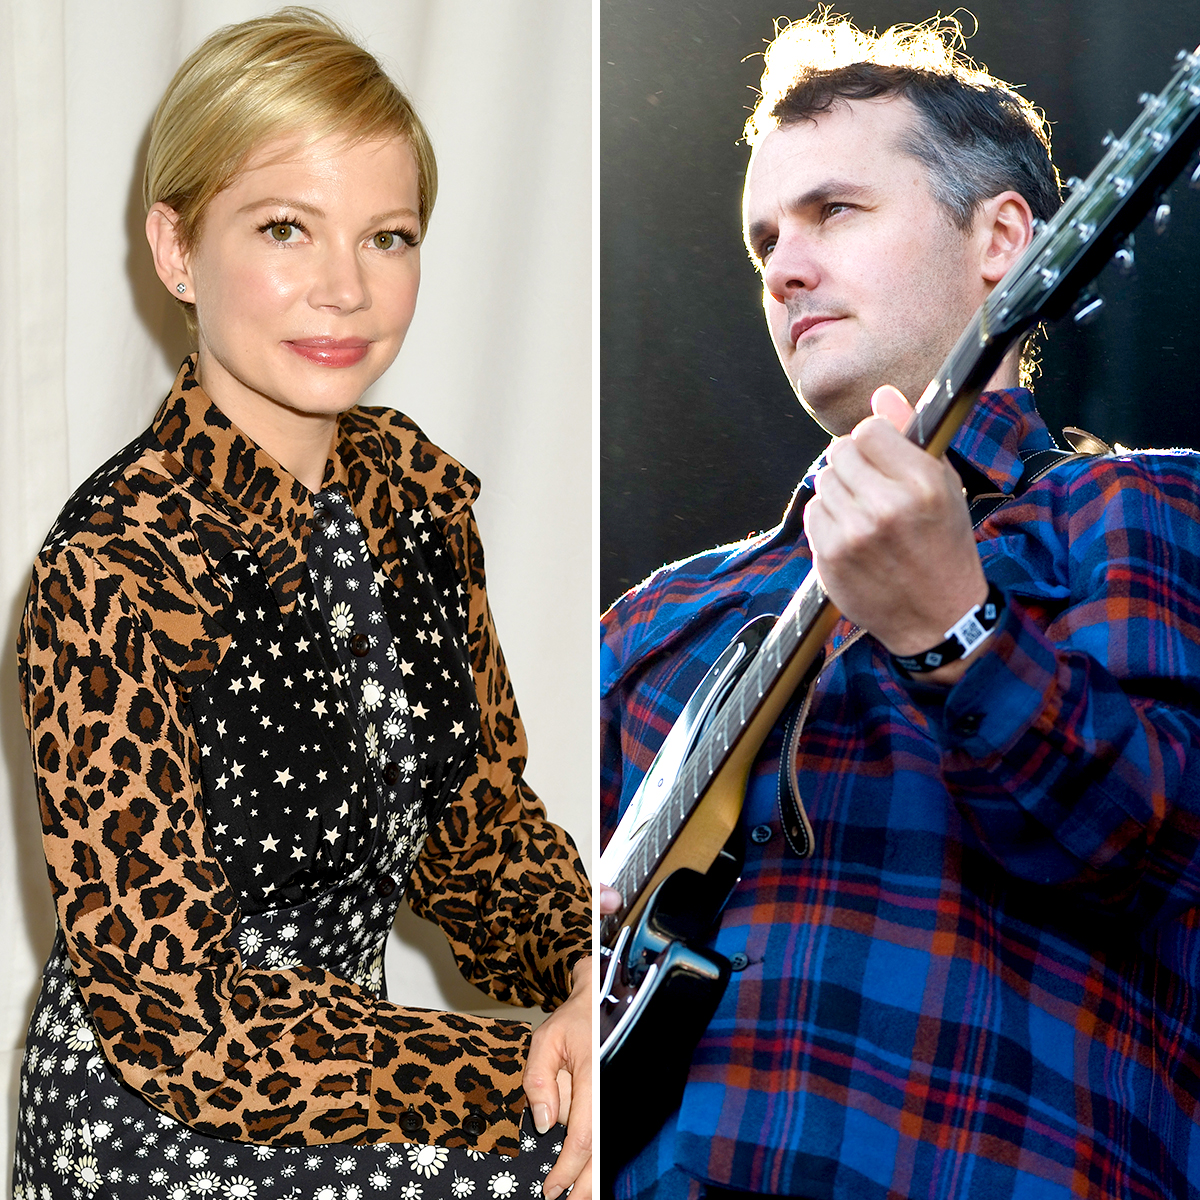 Michelle-Williams-and-Phil-Elverum-Split - Less than a year after surprising fans by secretly tying the knot in a private ceremony, the Oscar nominee and the former The Microphones frontman called it quits. News broke of their split in April 2019.